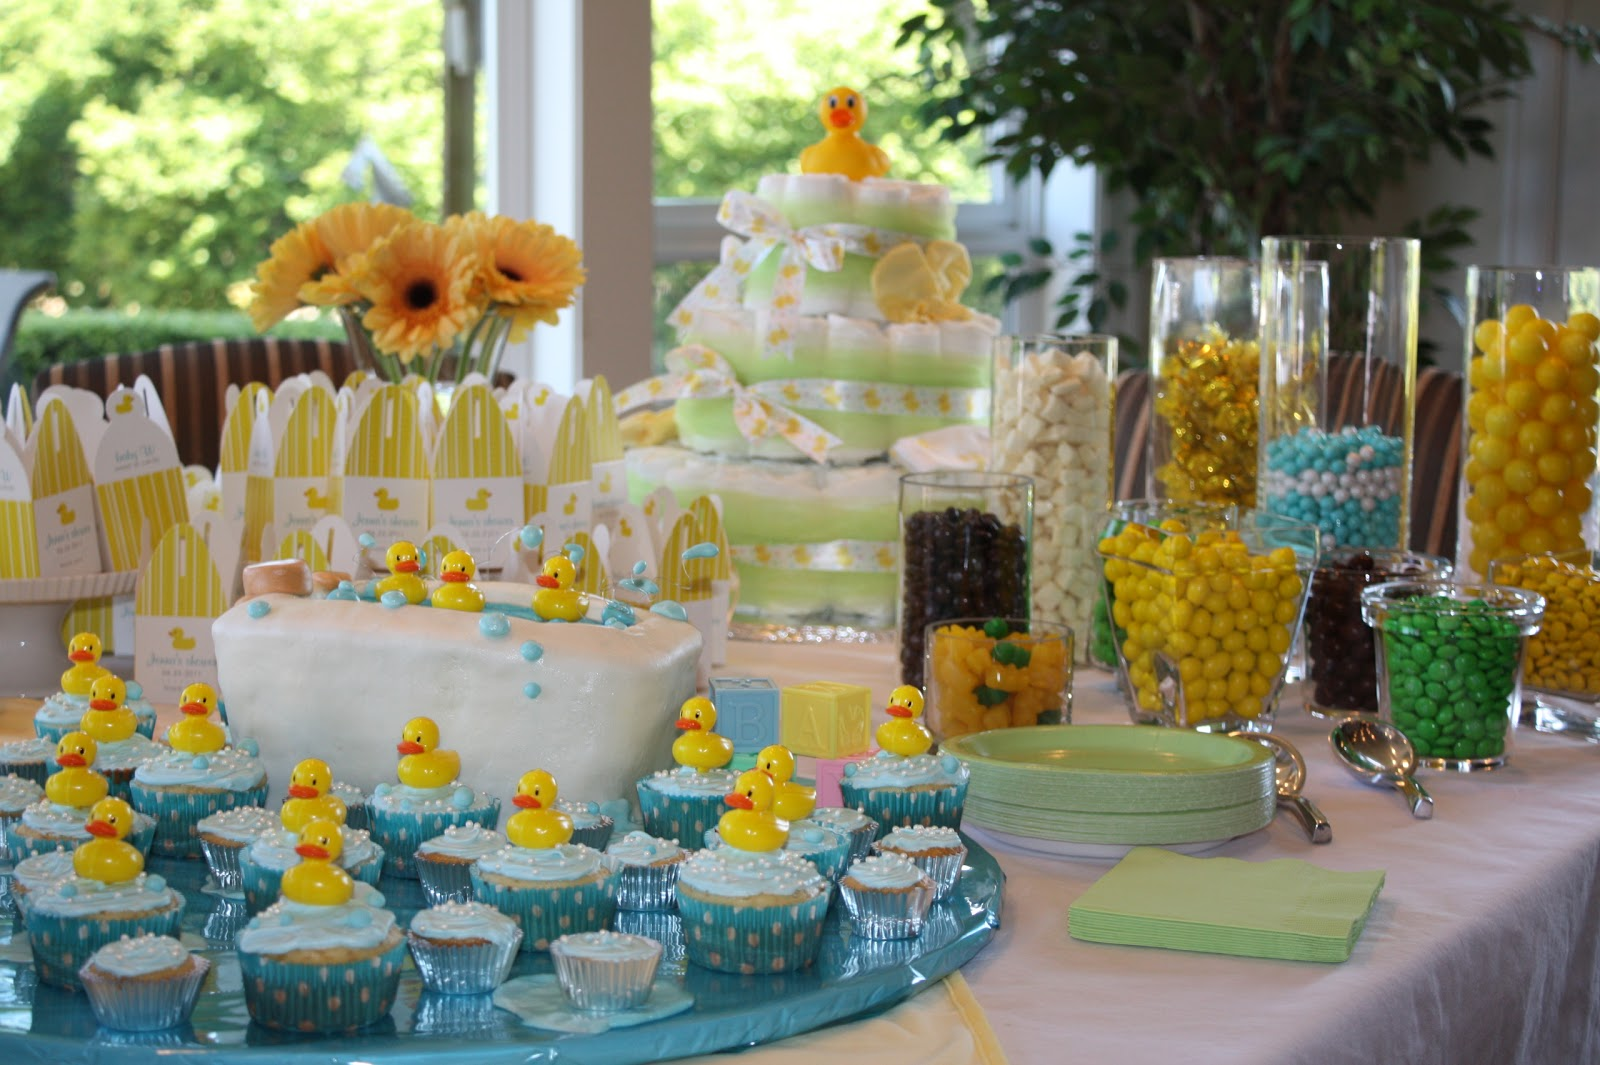 baby shower ideas rubber ducky theme - Baby Shower ...